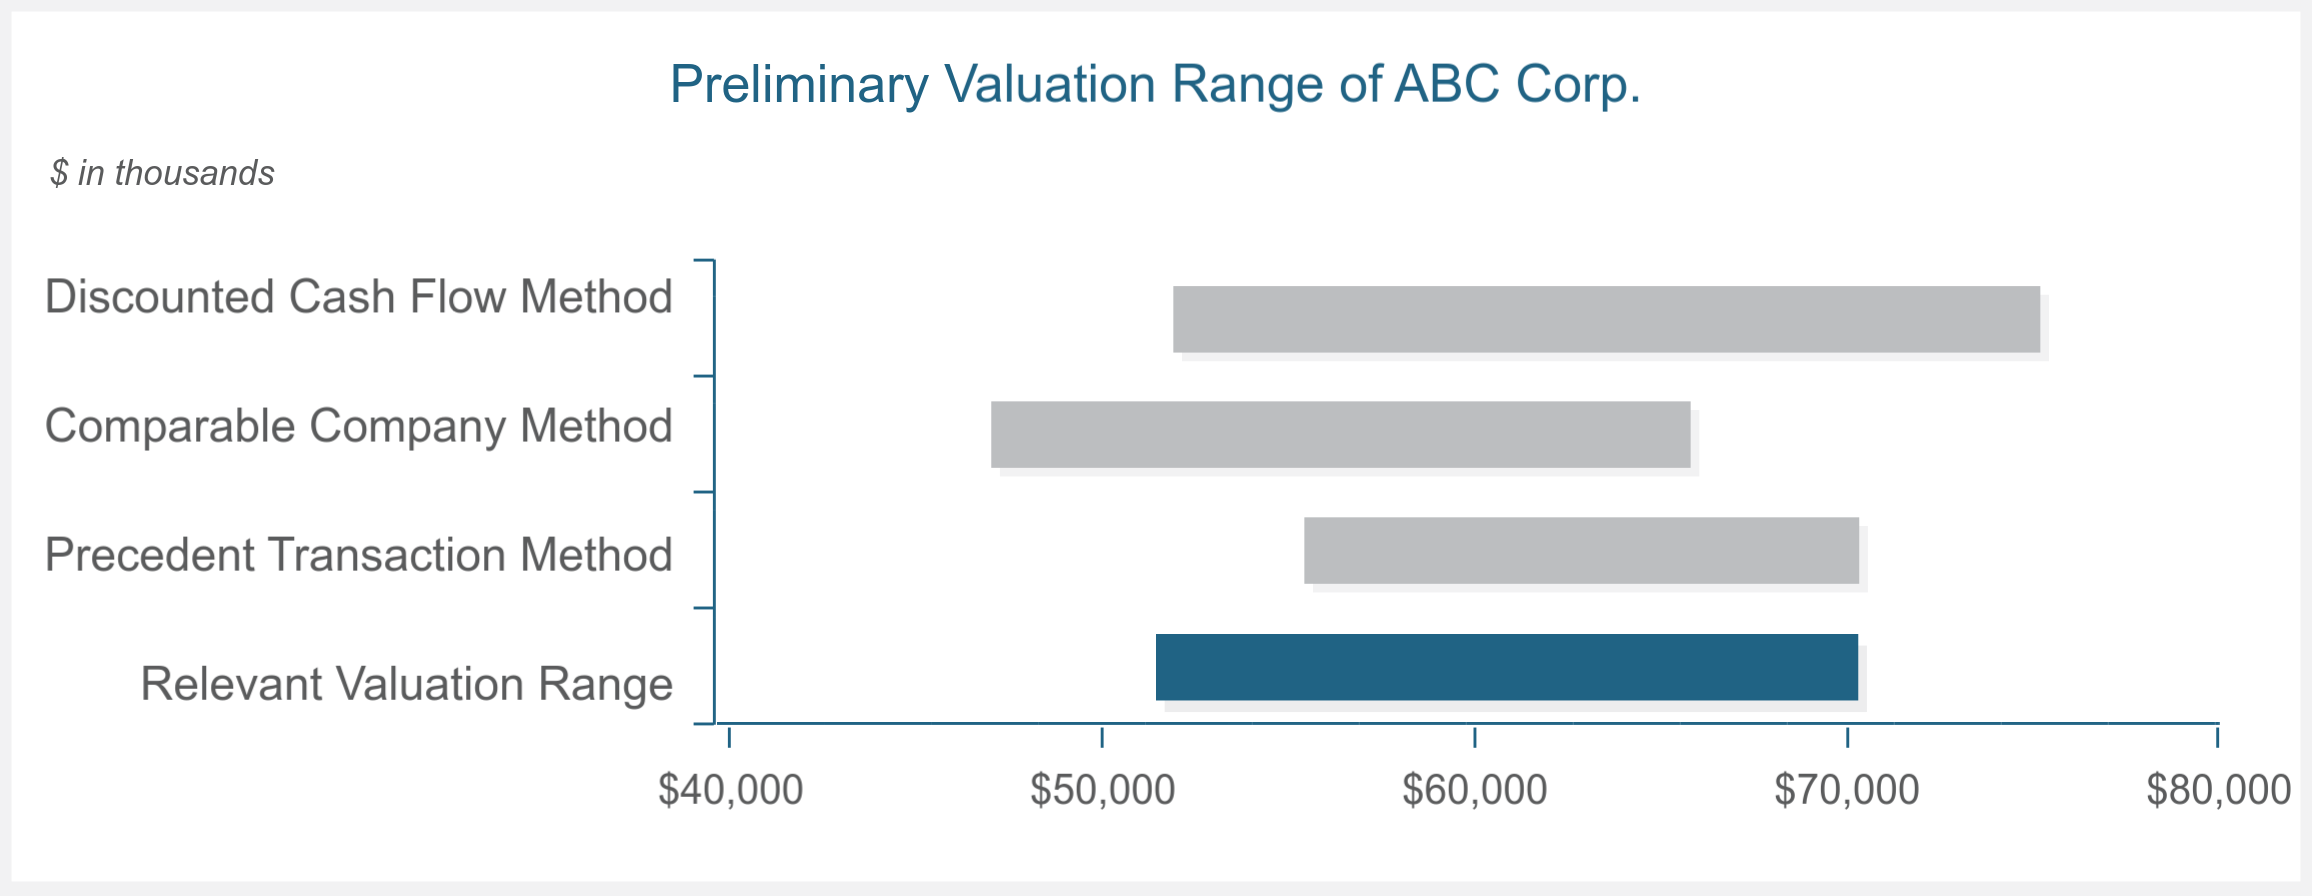 Preliminary valuation comparison